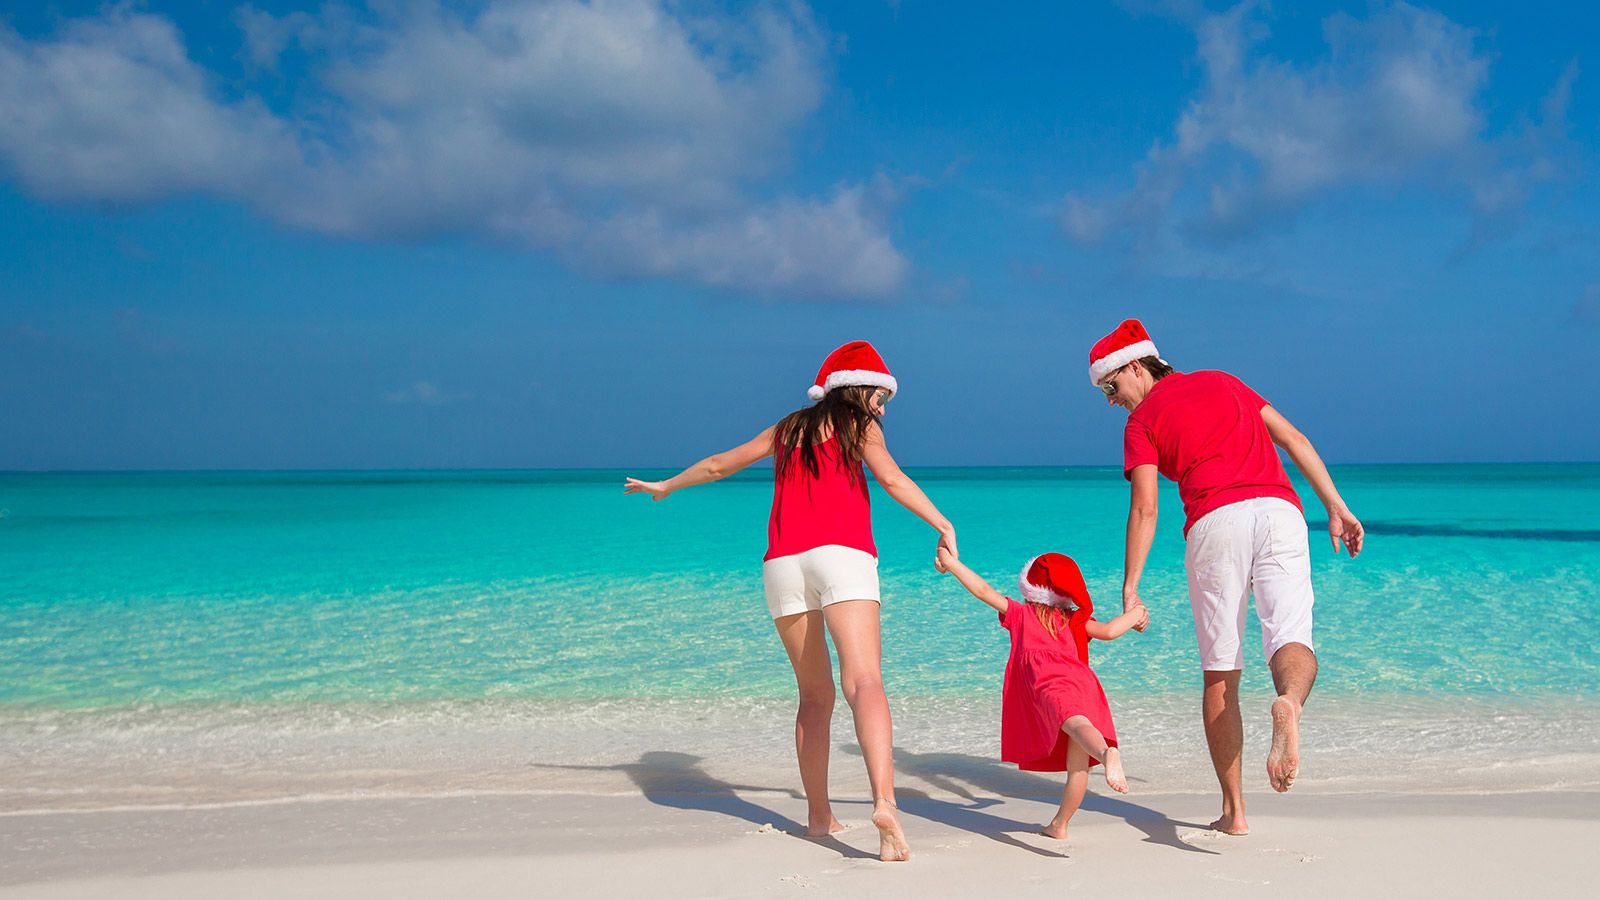 Christmas festivity in Maldives